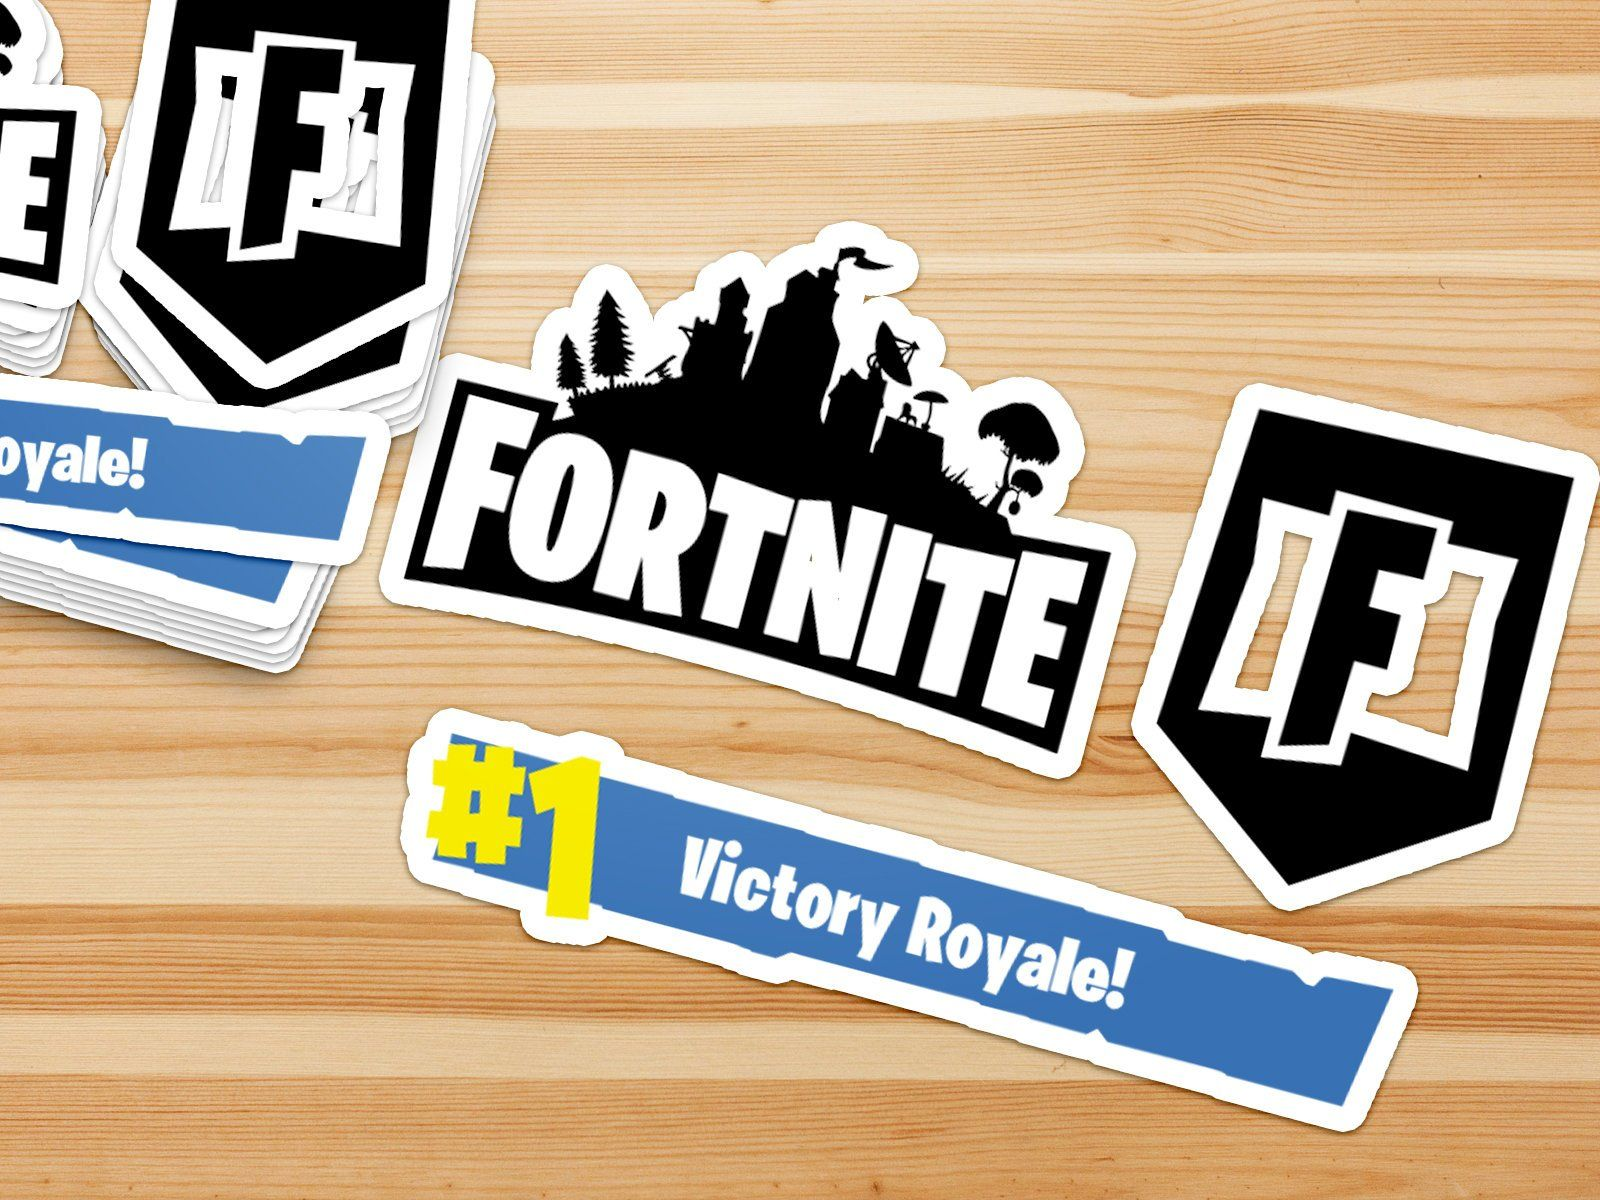 Fortnite Battle Royale Themed Stickers Decals F Letter Fortnite Logo Victory Royale Themed Stickers Vinyl Sticker Lettering